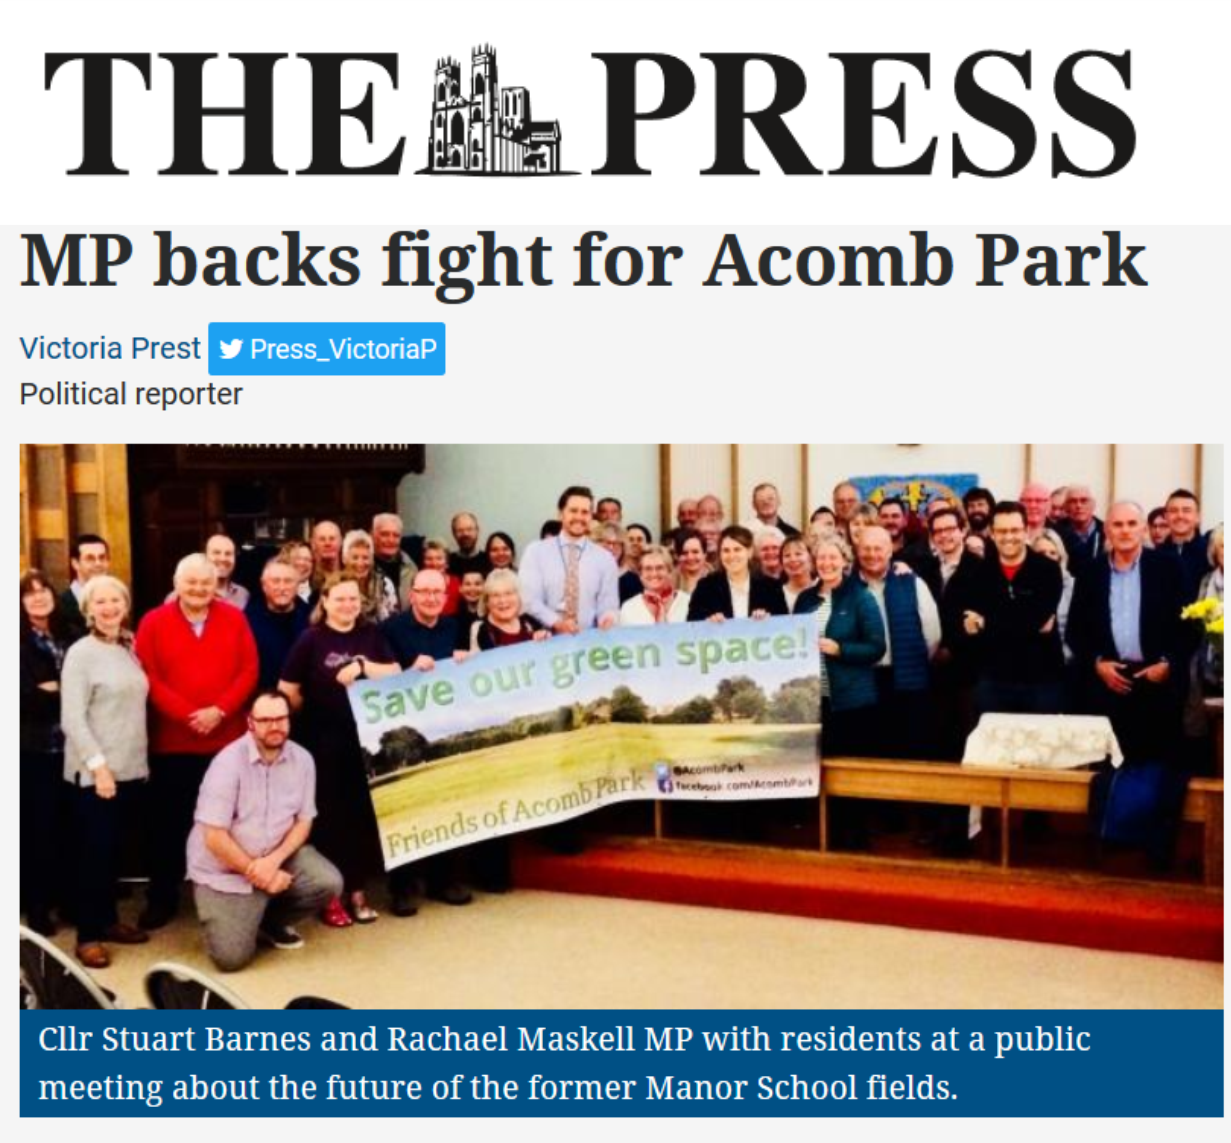 Friends_of_Acomb_park.png